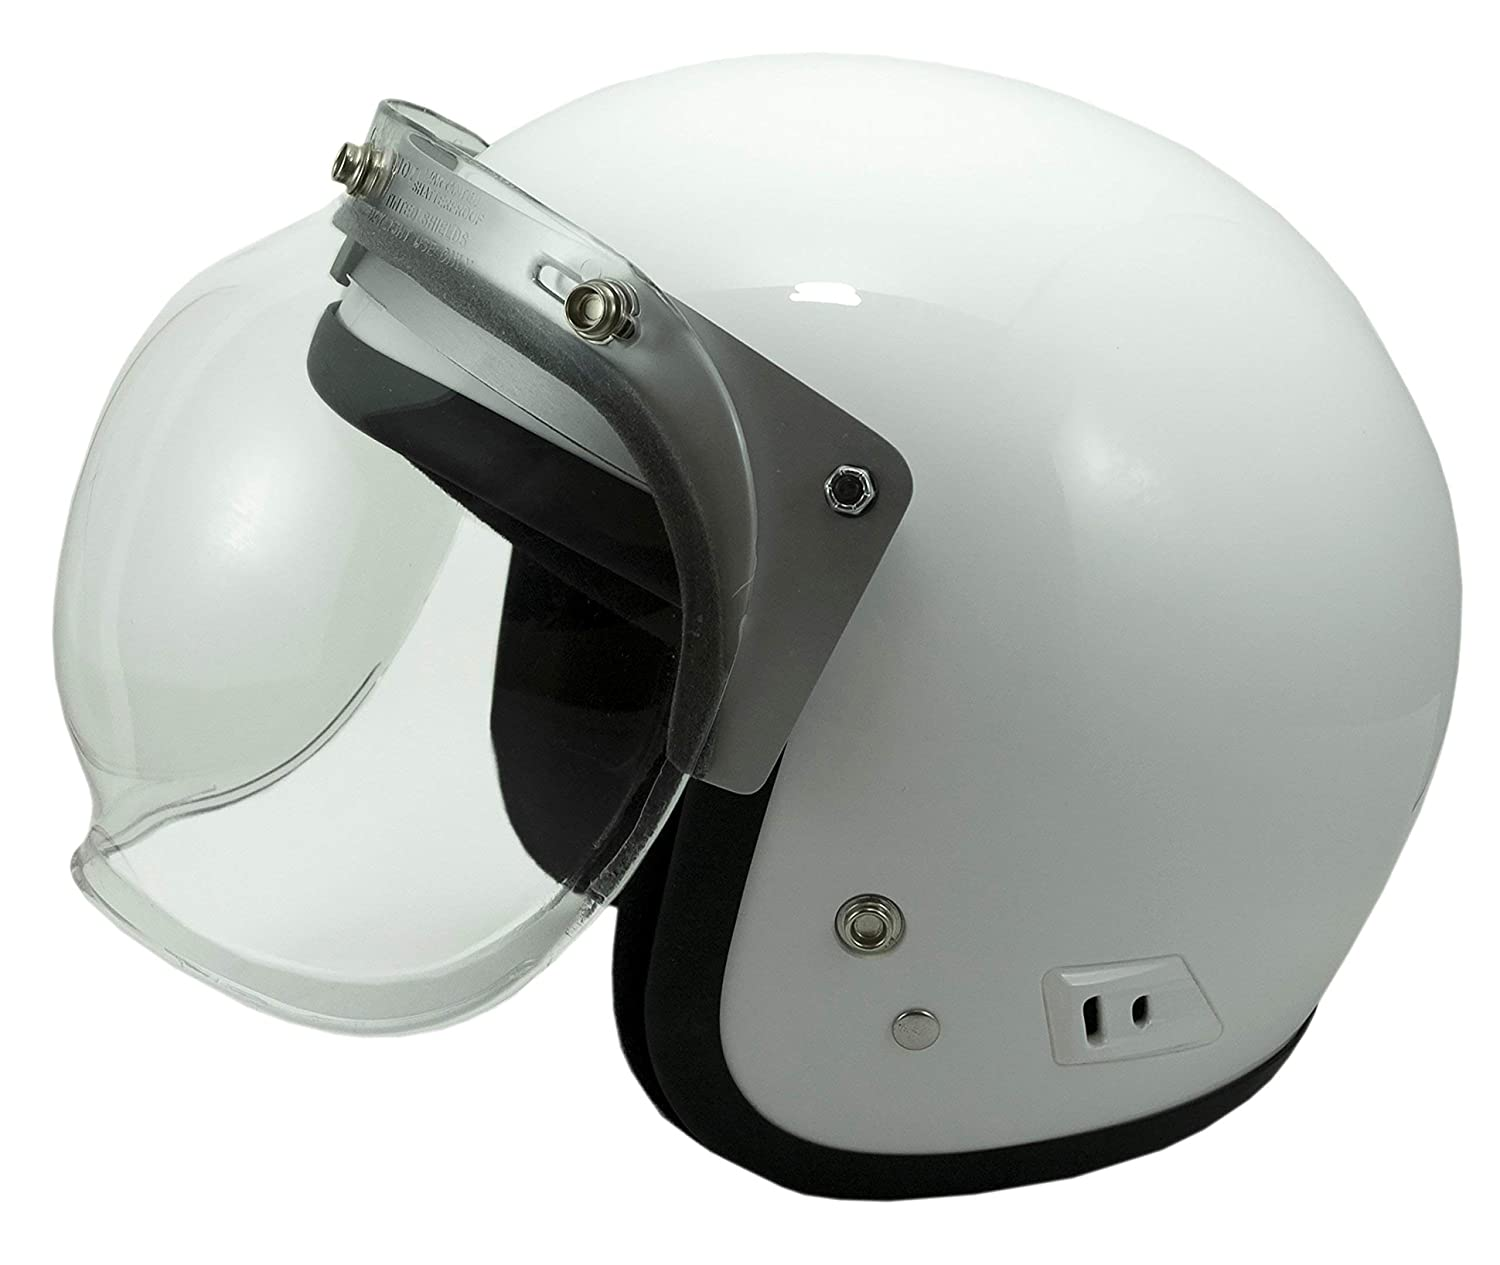 Motorcycle ATV Helmet 3 snap Bubble Flip Shield and Patented All Metal Adjustable Flip Up Adapter Made in USA by Hanson Design Co.